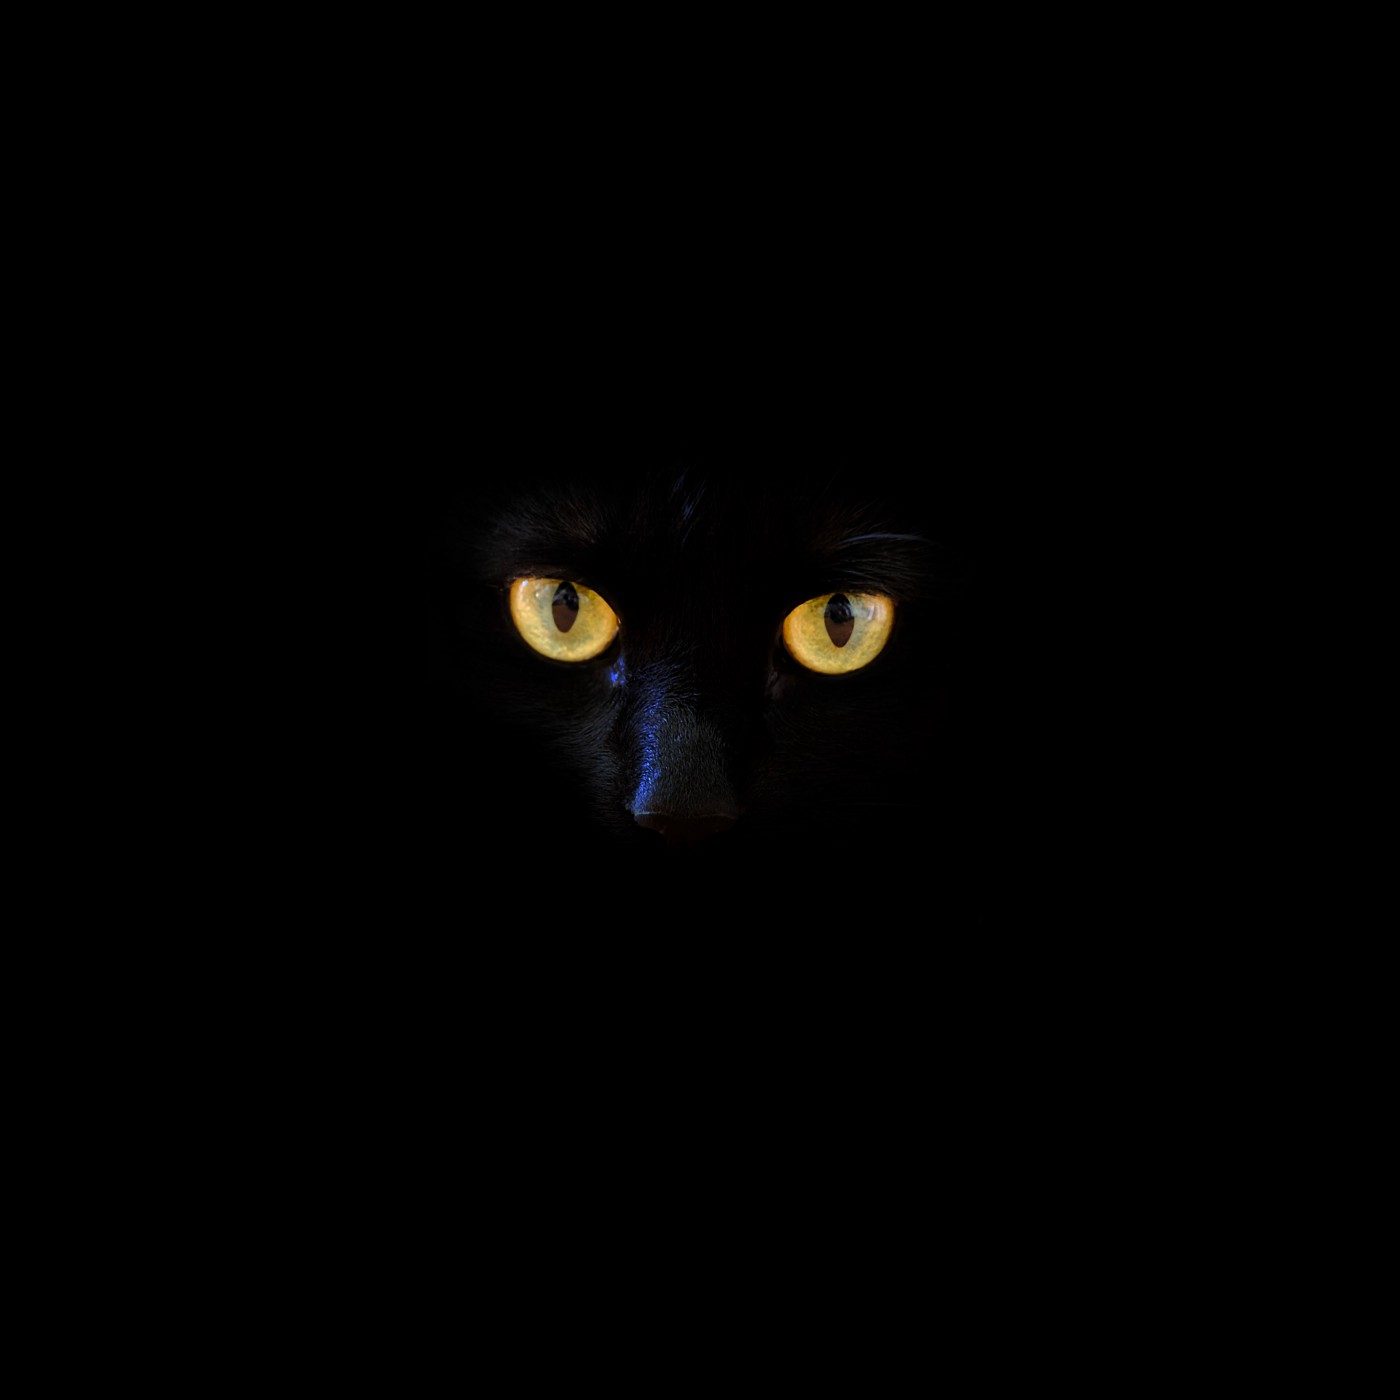 Black cat with yellow eyes on black background